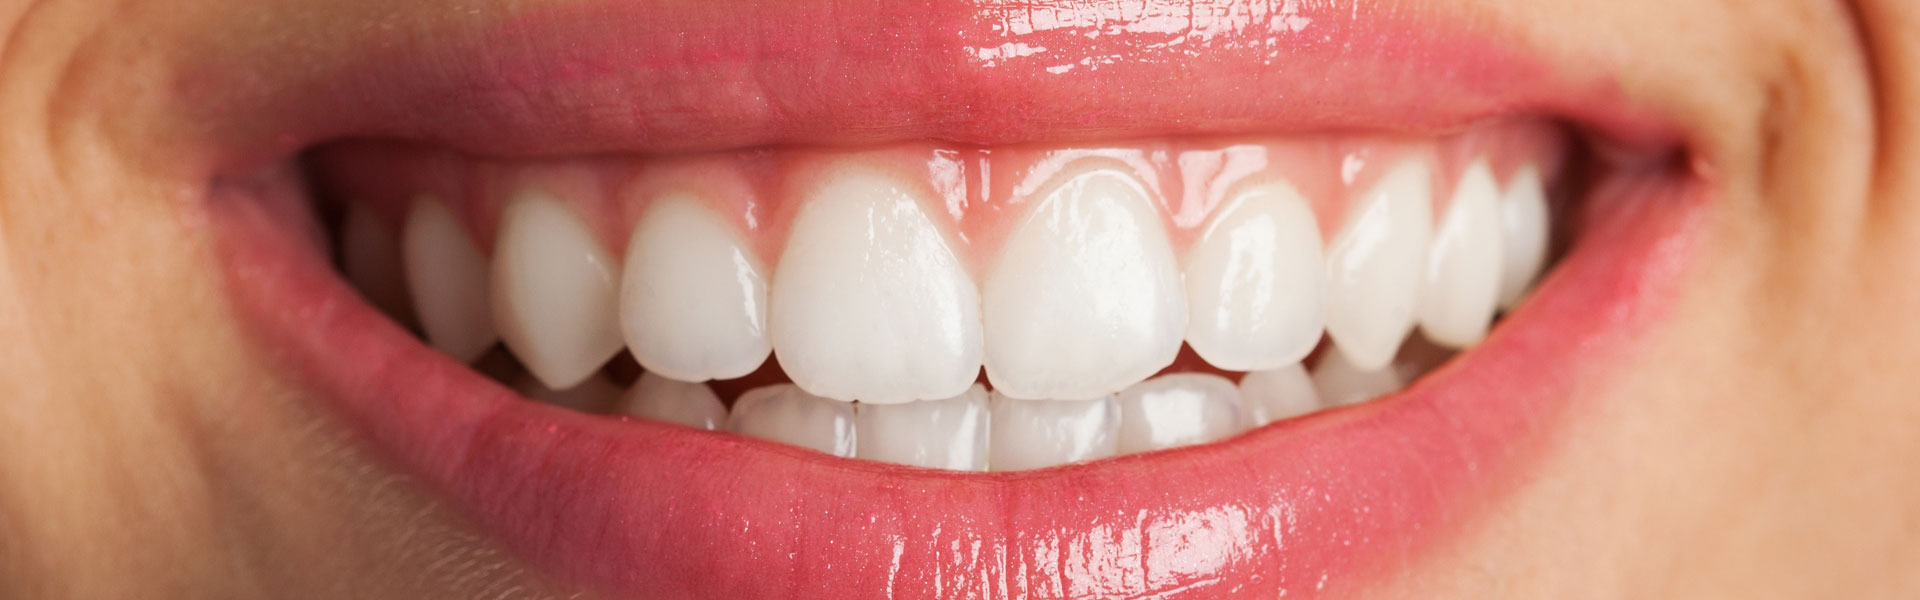 Everything You Need to Know About the KöR Teeth Whitening System